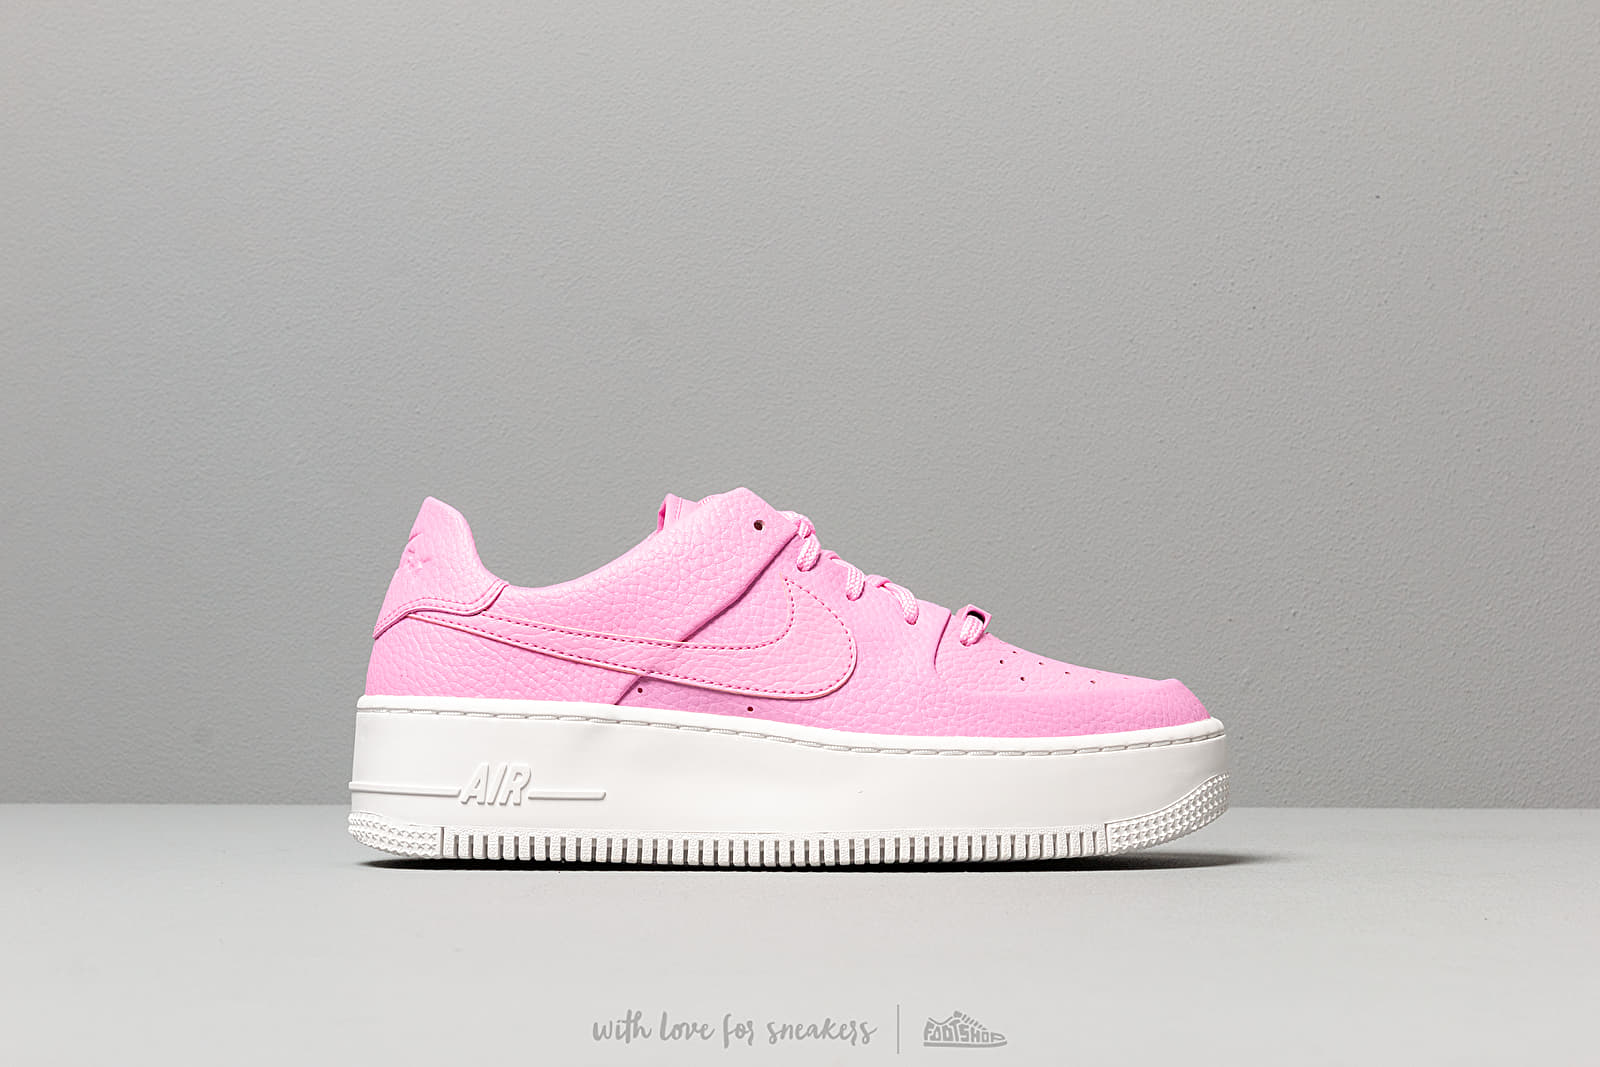 6da5680ca Nike W Air Force 1 Sage Low Psychic Pink/ Psychic Pink-White | Footshop